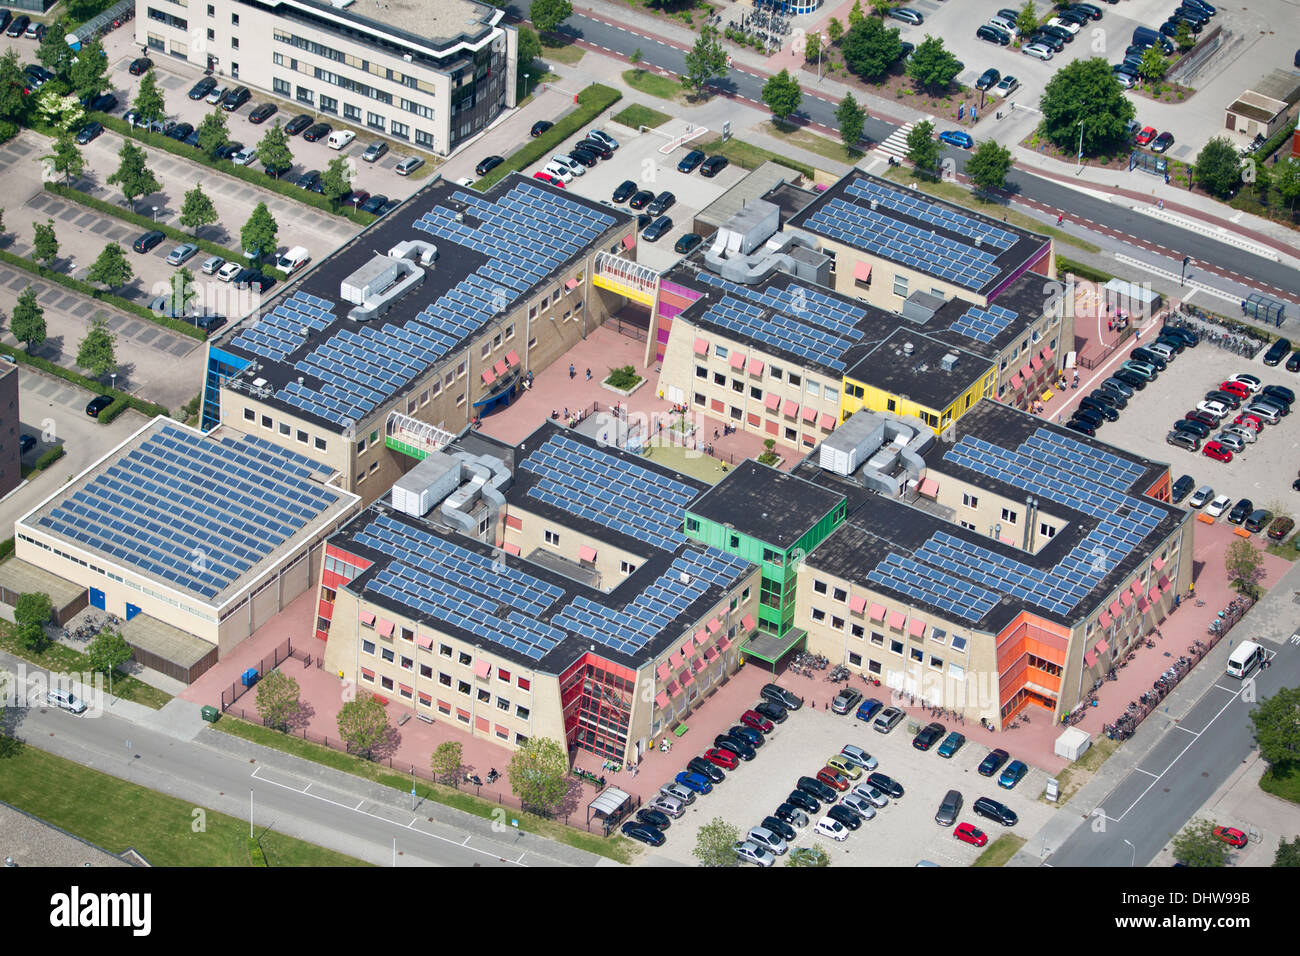 Netherlands, Zwolle, Hengeveld College, The Ambelt, an educational institution for Special and Secondary Education. Aerial - Stock Image